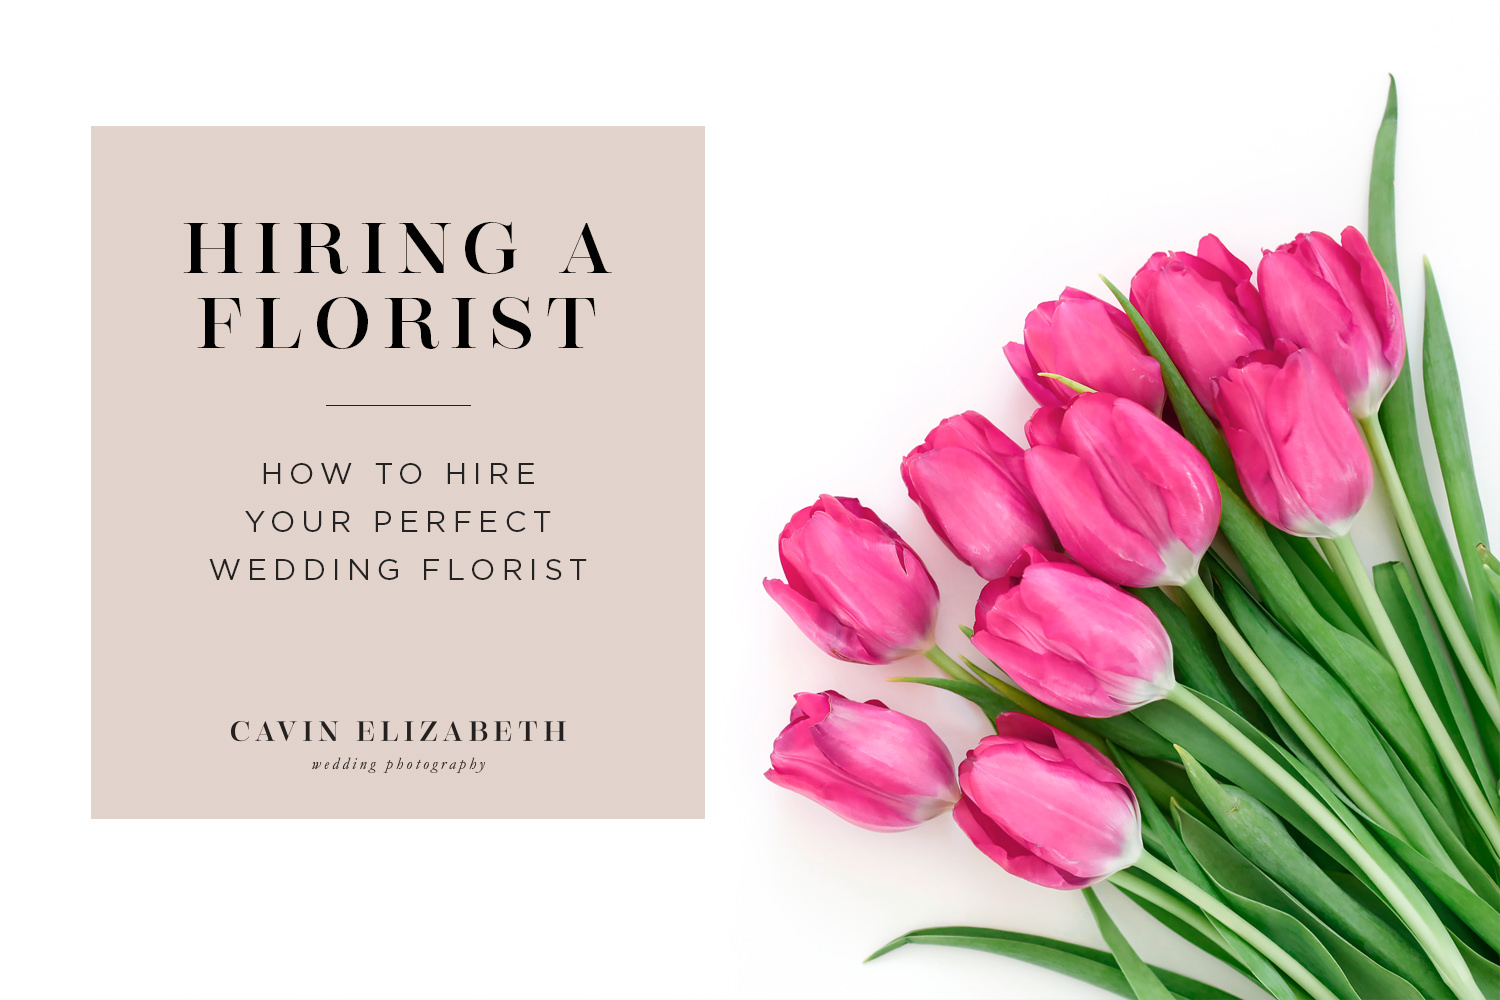 Florists Share Their Best Advice for Choosing Your Perfect Wedding Florist. How to choose a florist that's right for your vision.